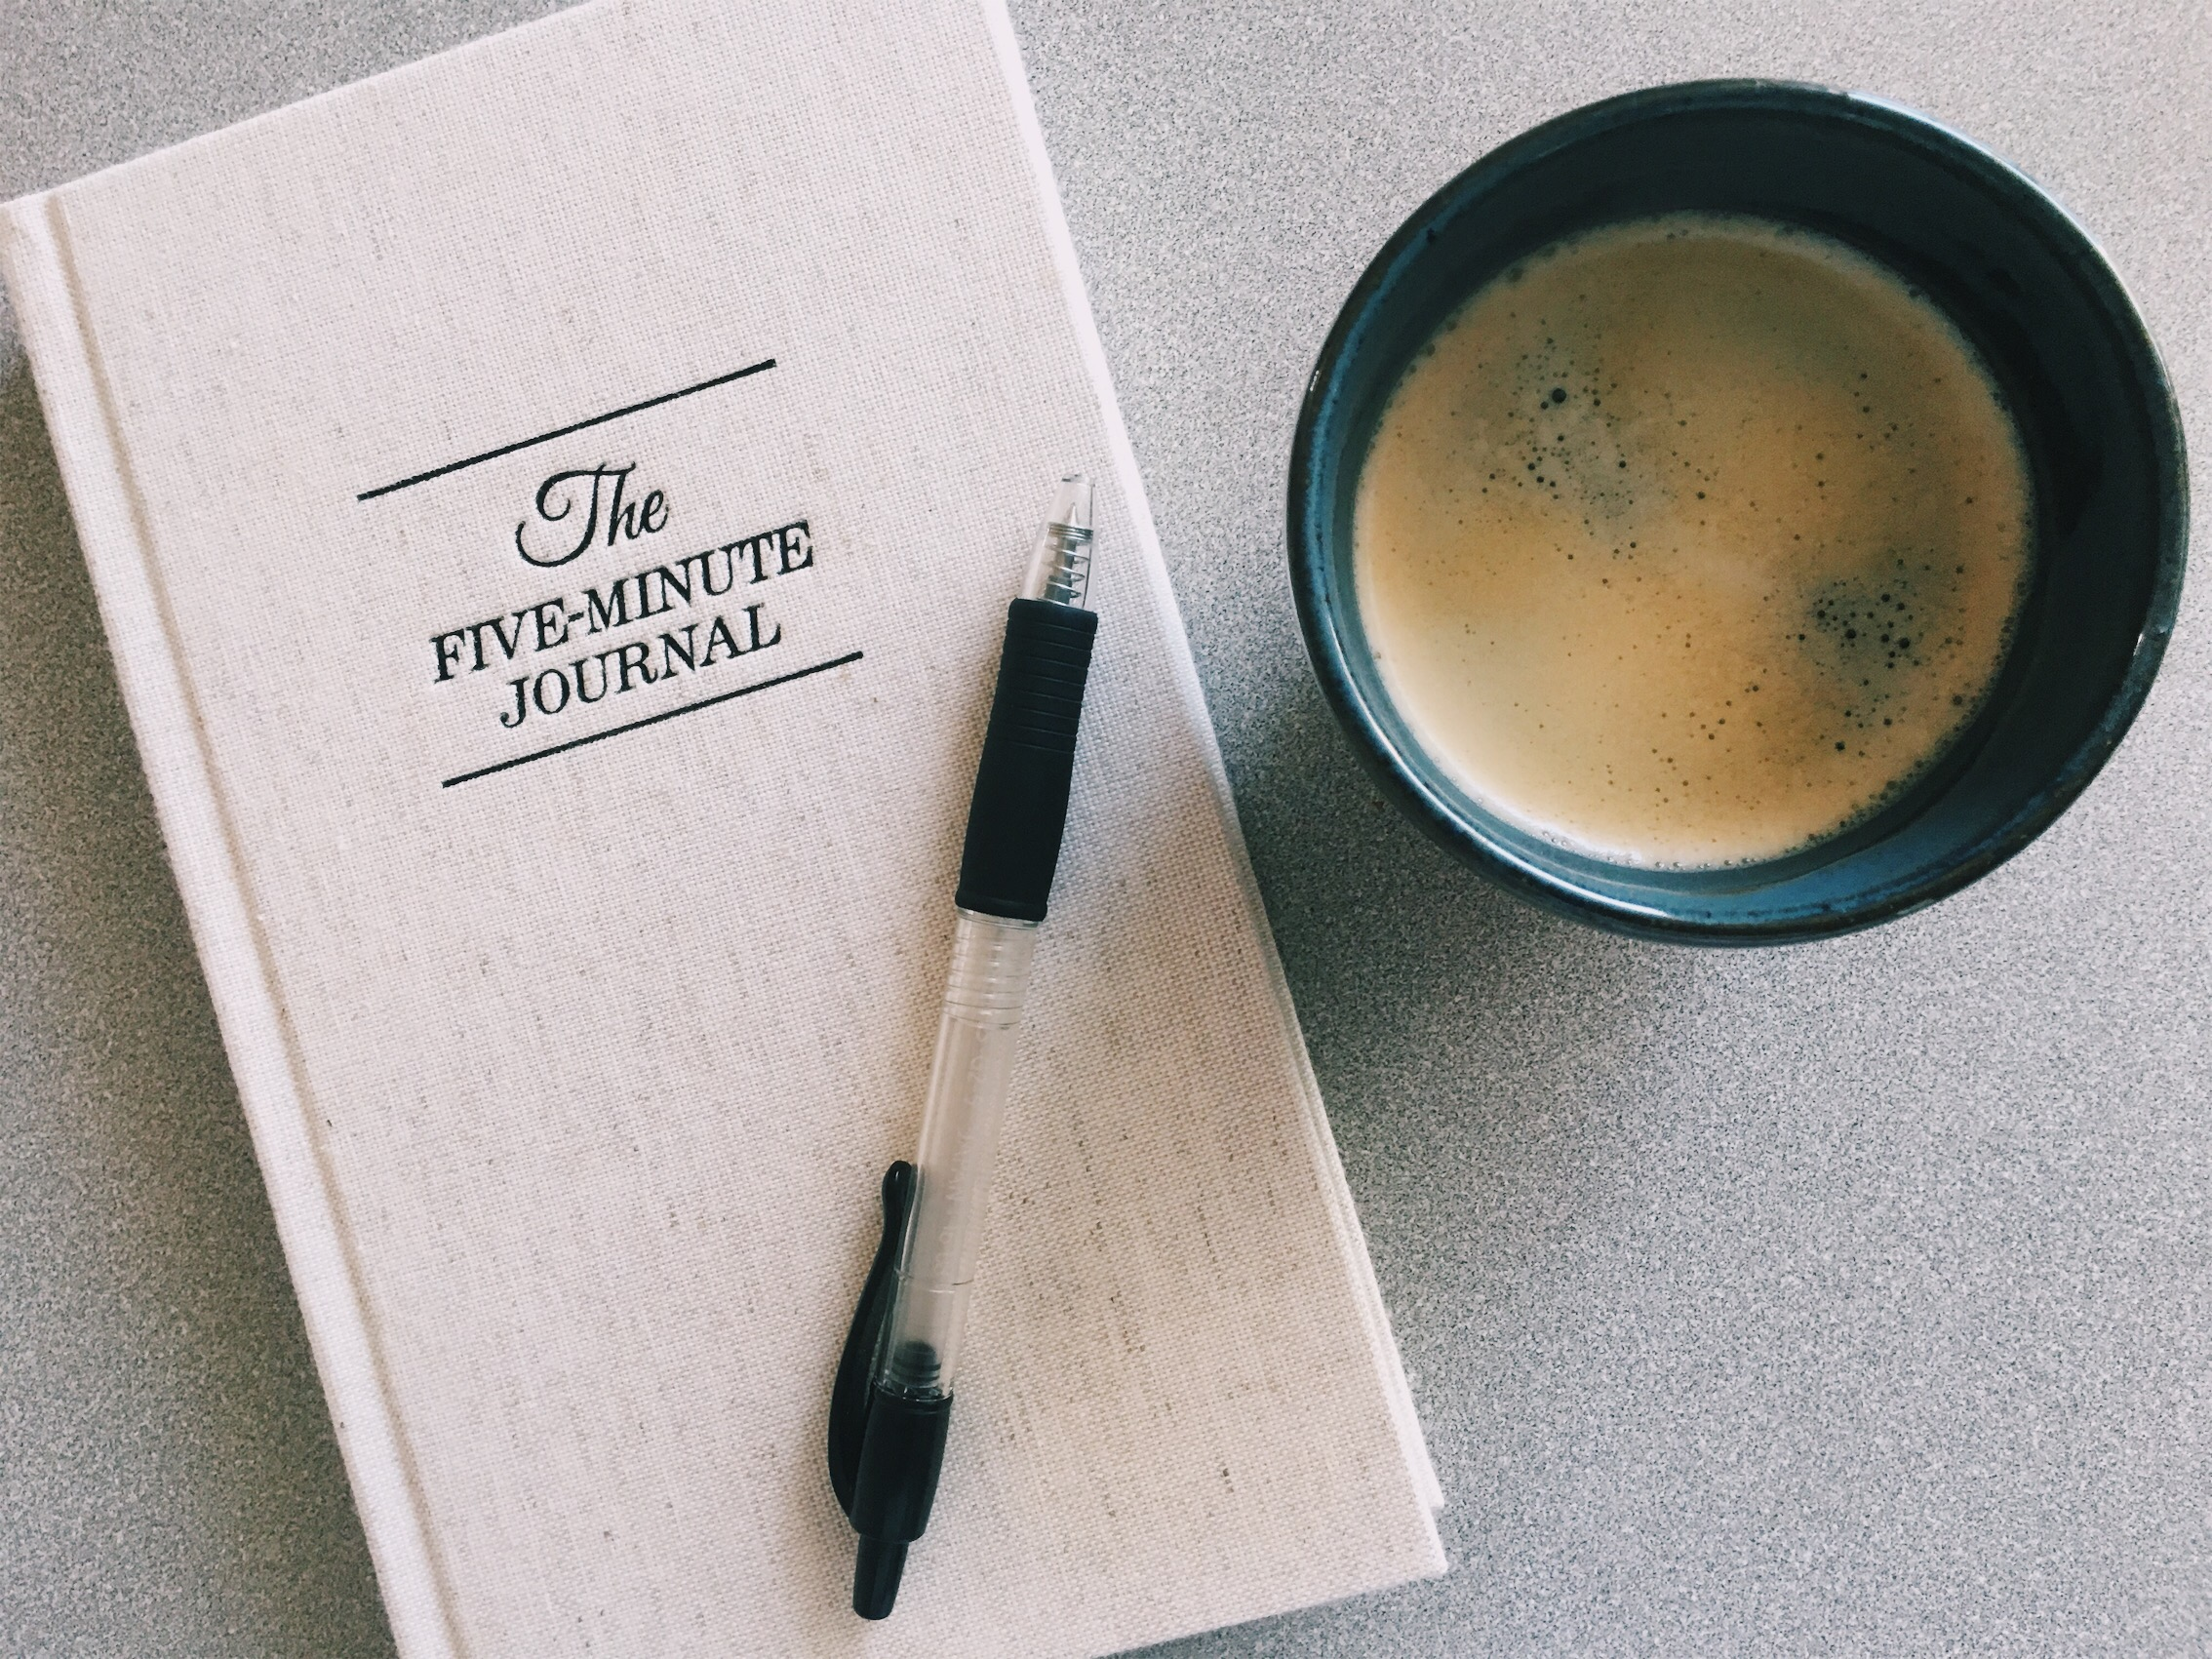 7 am - Wake-up - Americano #1 (served black, no sugar). Morning times are sacred for me and I try to sit quiet and journal. I have an on / off relationship with journaling but was recently gifted The Five Minute journal and it's been wonderful to have a morning writing practice that is easy enough so I can maintain the consistency. **this is not a sponsored post! I just love sharing tools that I use!  8:30 a - Americano #2 (shamelessly). I didn't take a photo because both cups were pretty much the same ;)